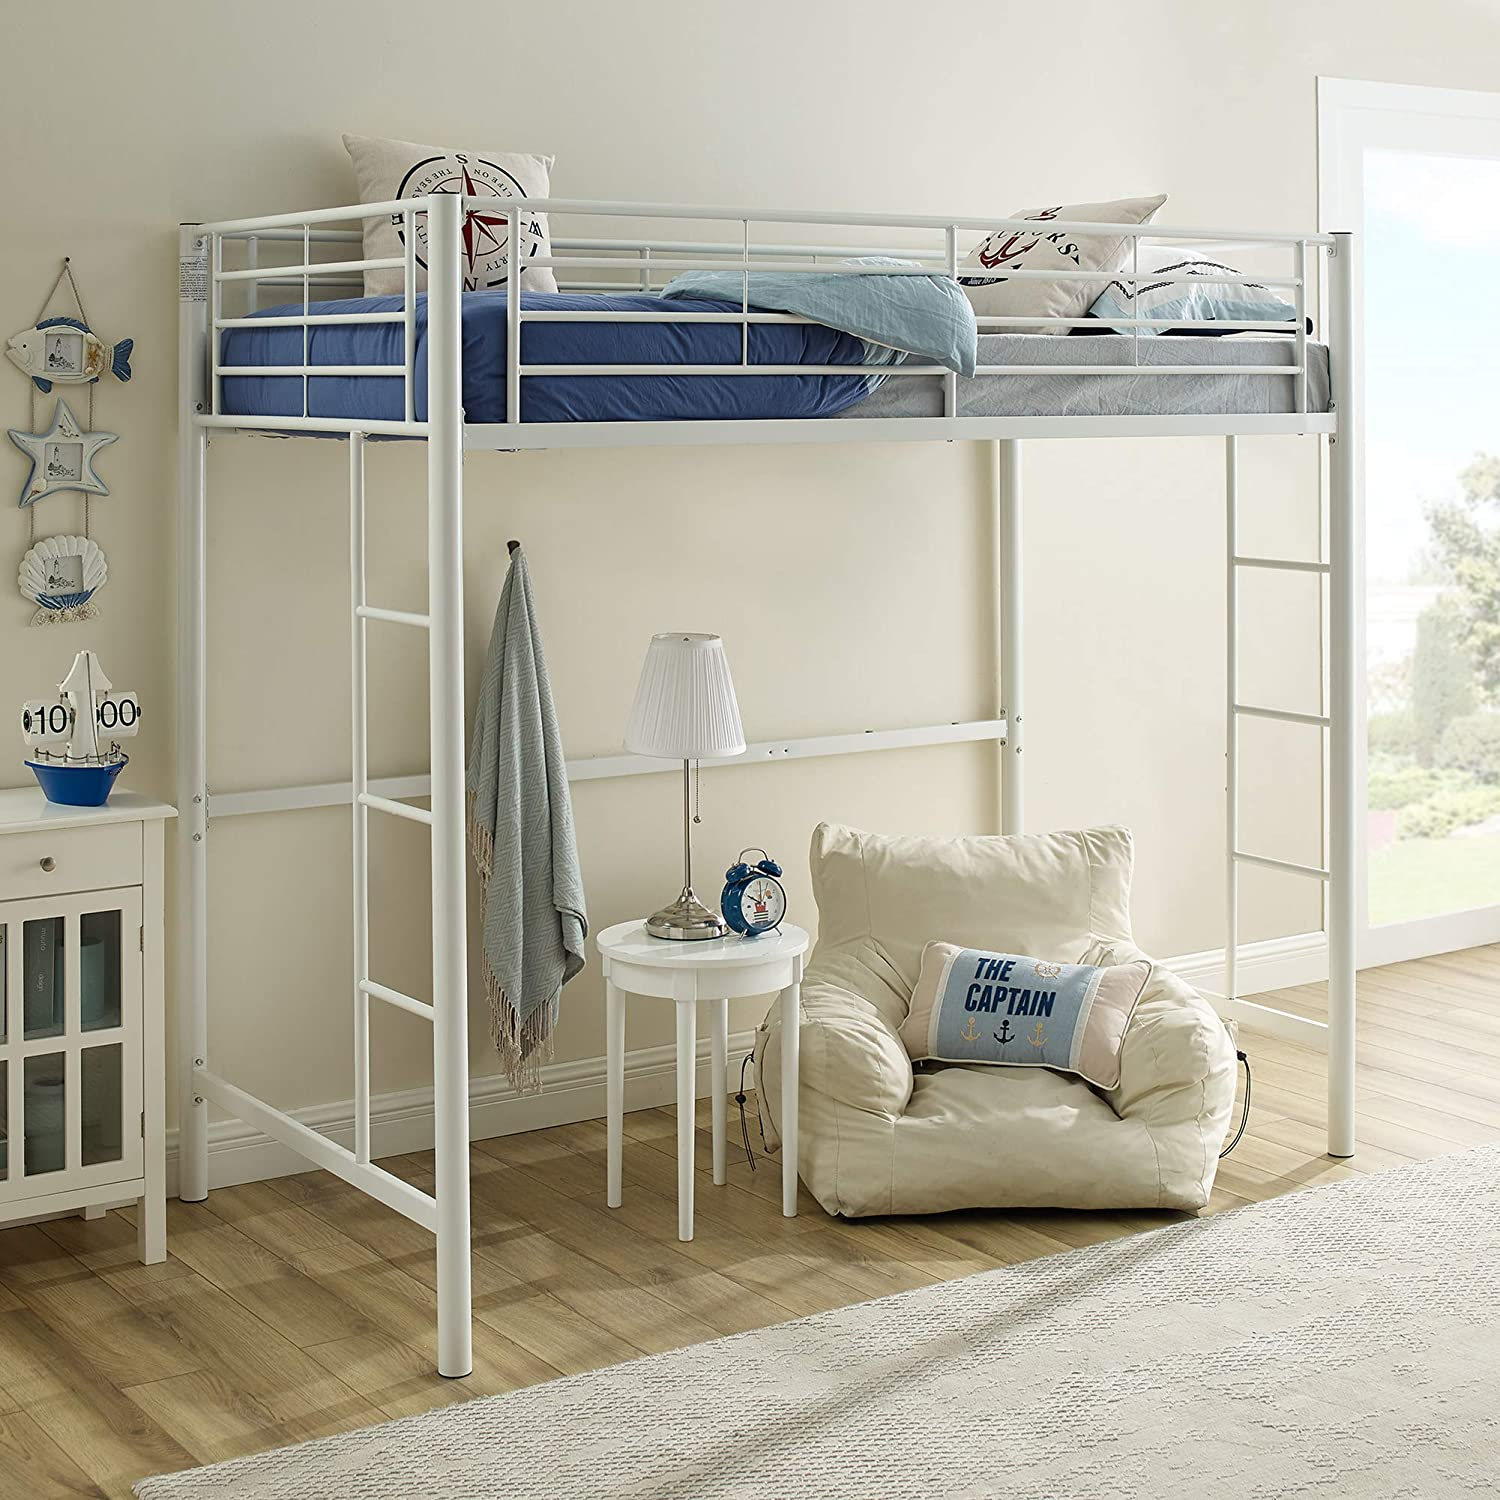 WE Furniture Modern Metal Pipe Twin Size Loft Kids Bunk Bed Bedroom, White